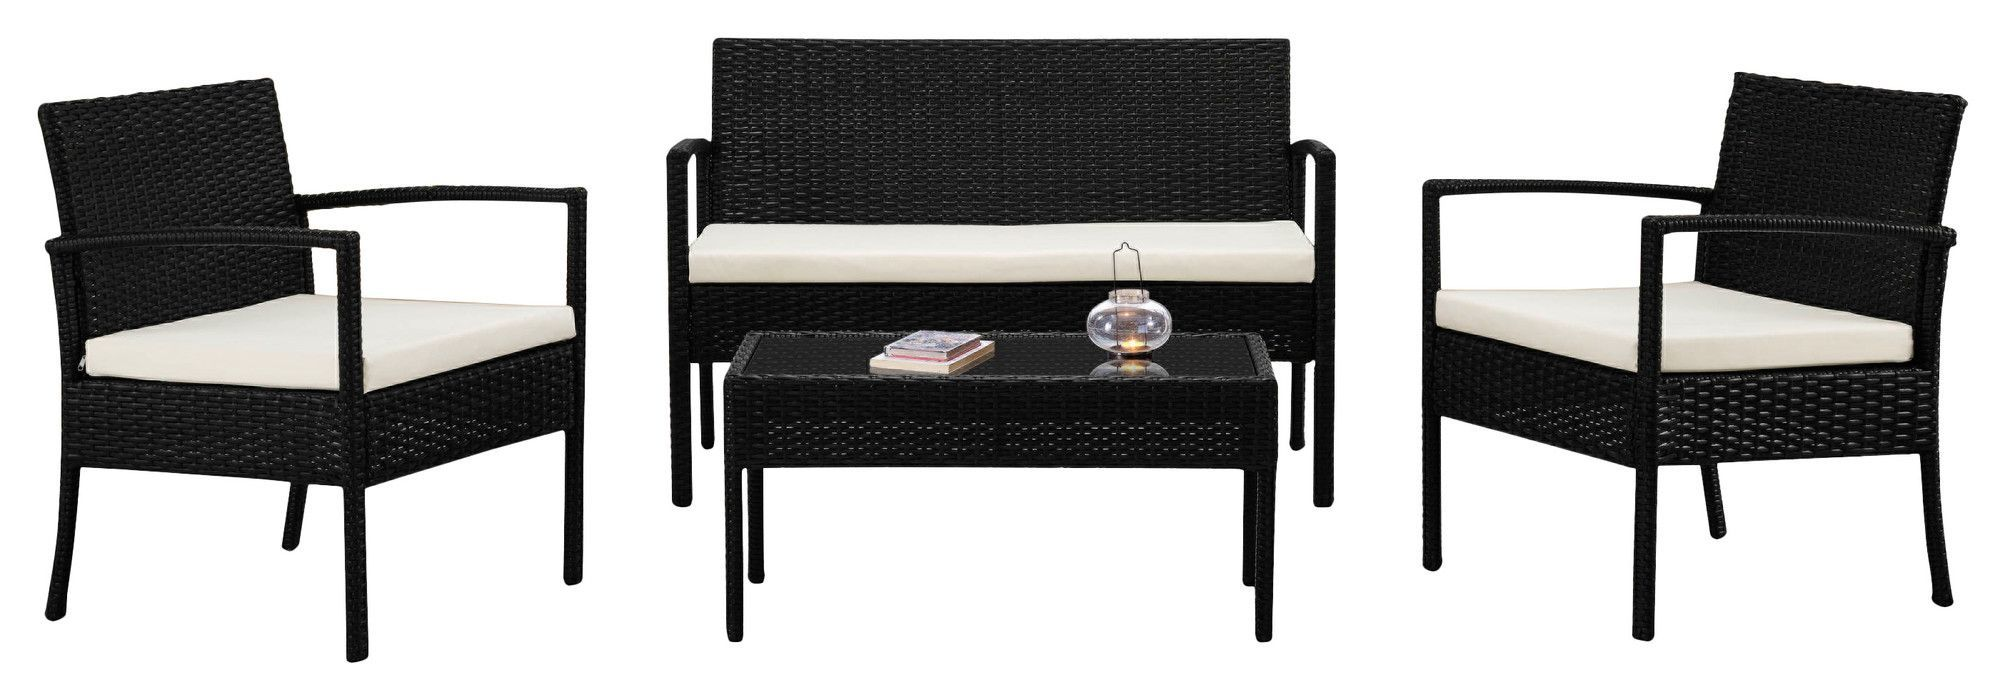 4 Piece Wicker Seating Group with Cushion